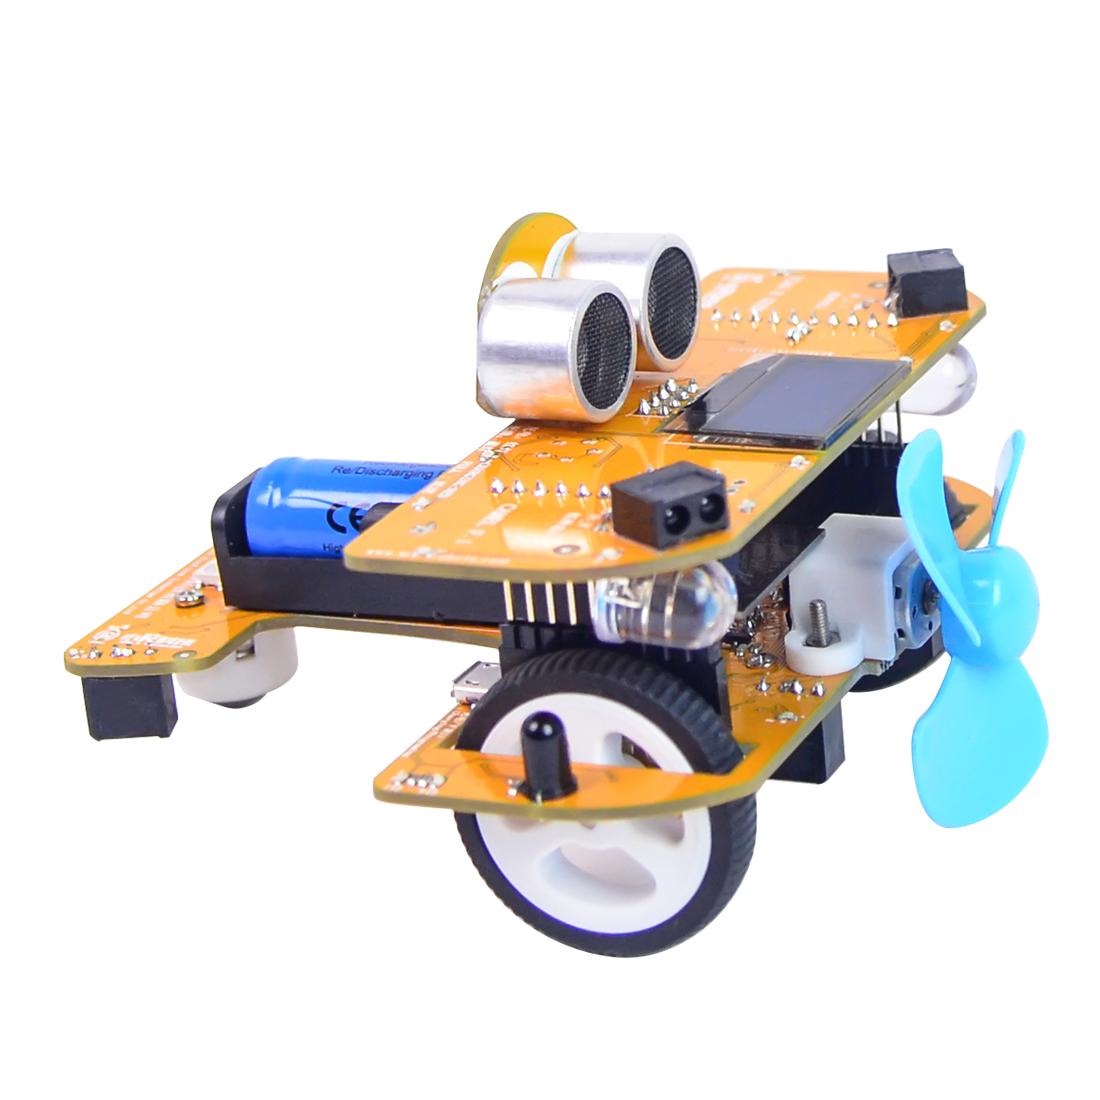 Programmable Intelligent Car Steam Educational DIY Plane With Graphical Processing Scratch Mixly For Arduino UNO R3(WIFI Control